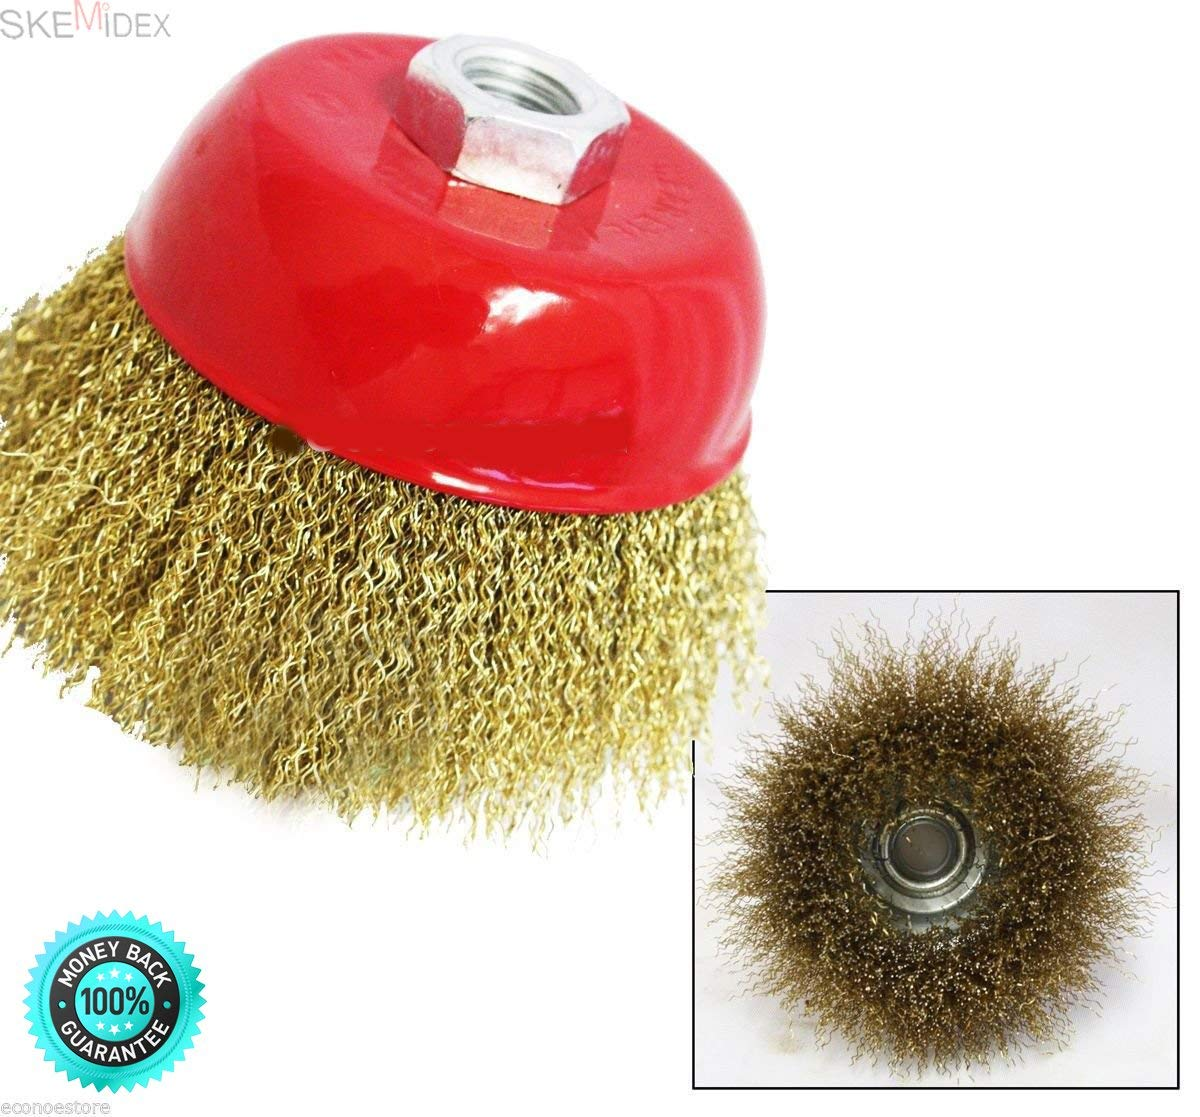 """SKEMiDEX---4-2/1"""" THREADED CUP WIRE WHEEL BRUSH FOR 5/8"""" SHAFT. Ready Metal Surfaces for Welding, Soldering & Painting Polish Steel, Brass & Copper Objects"""